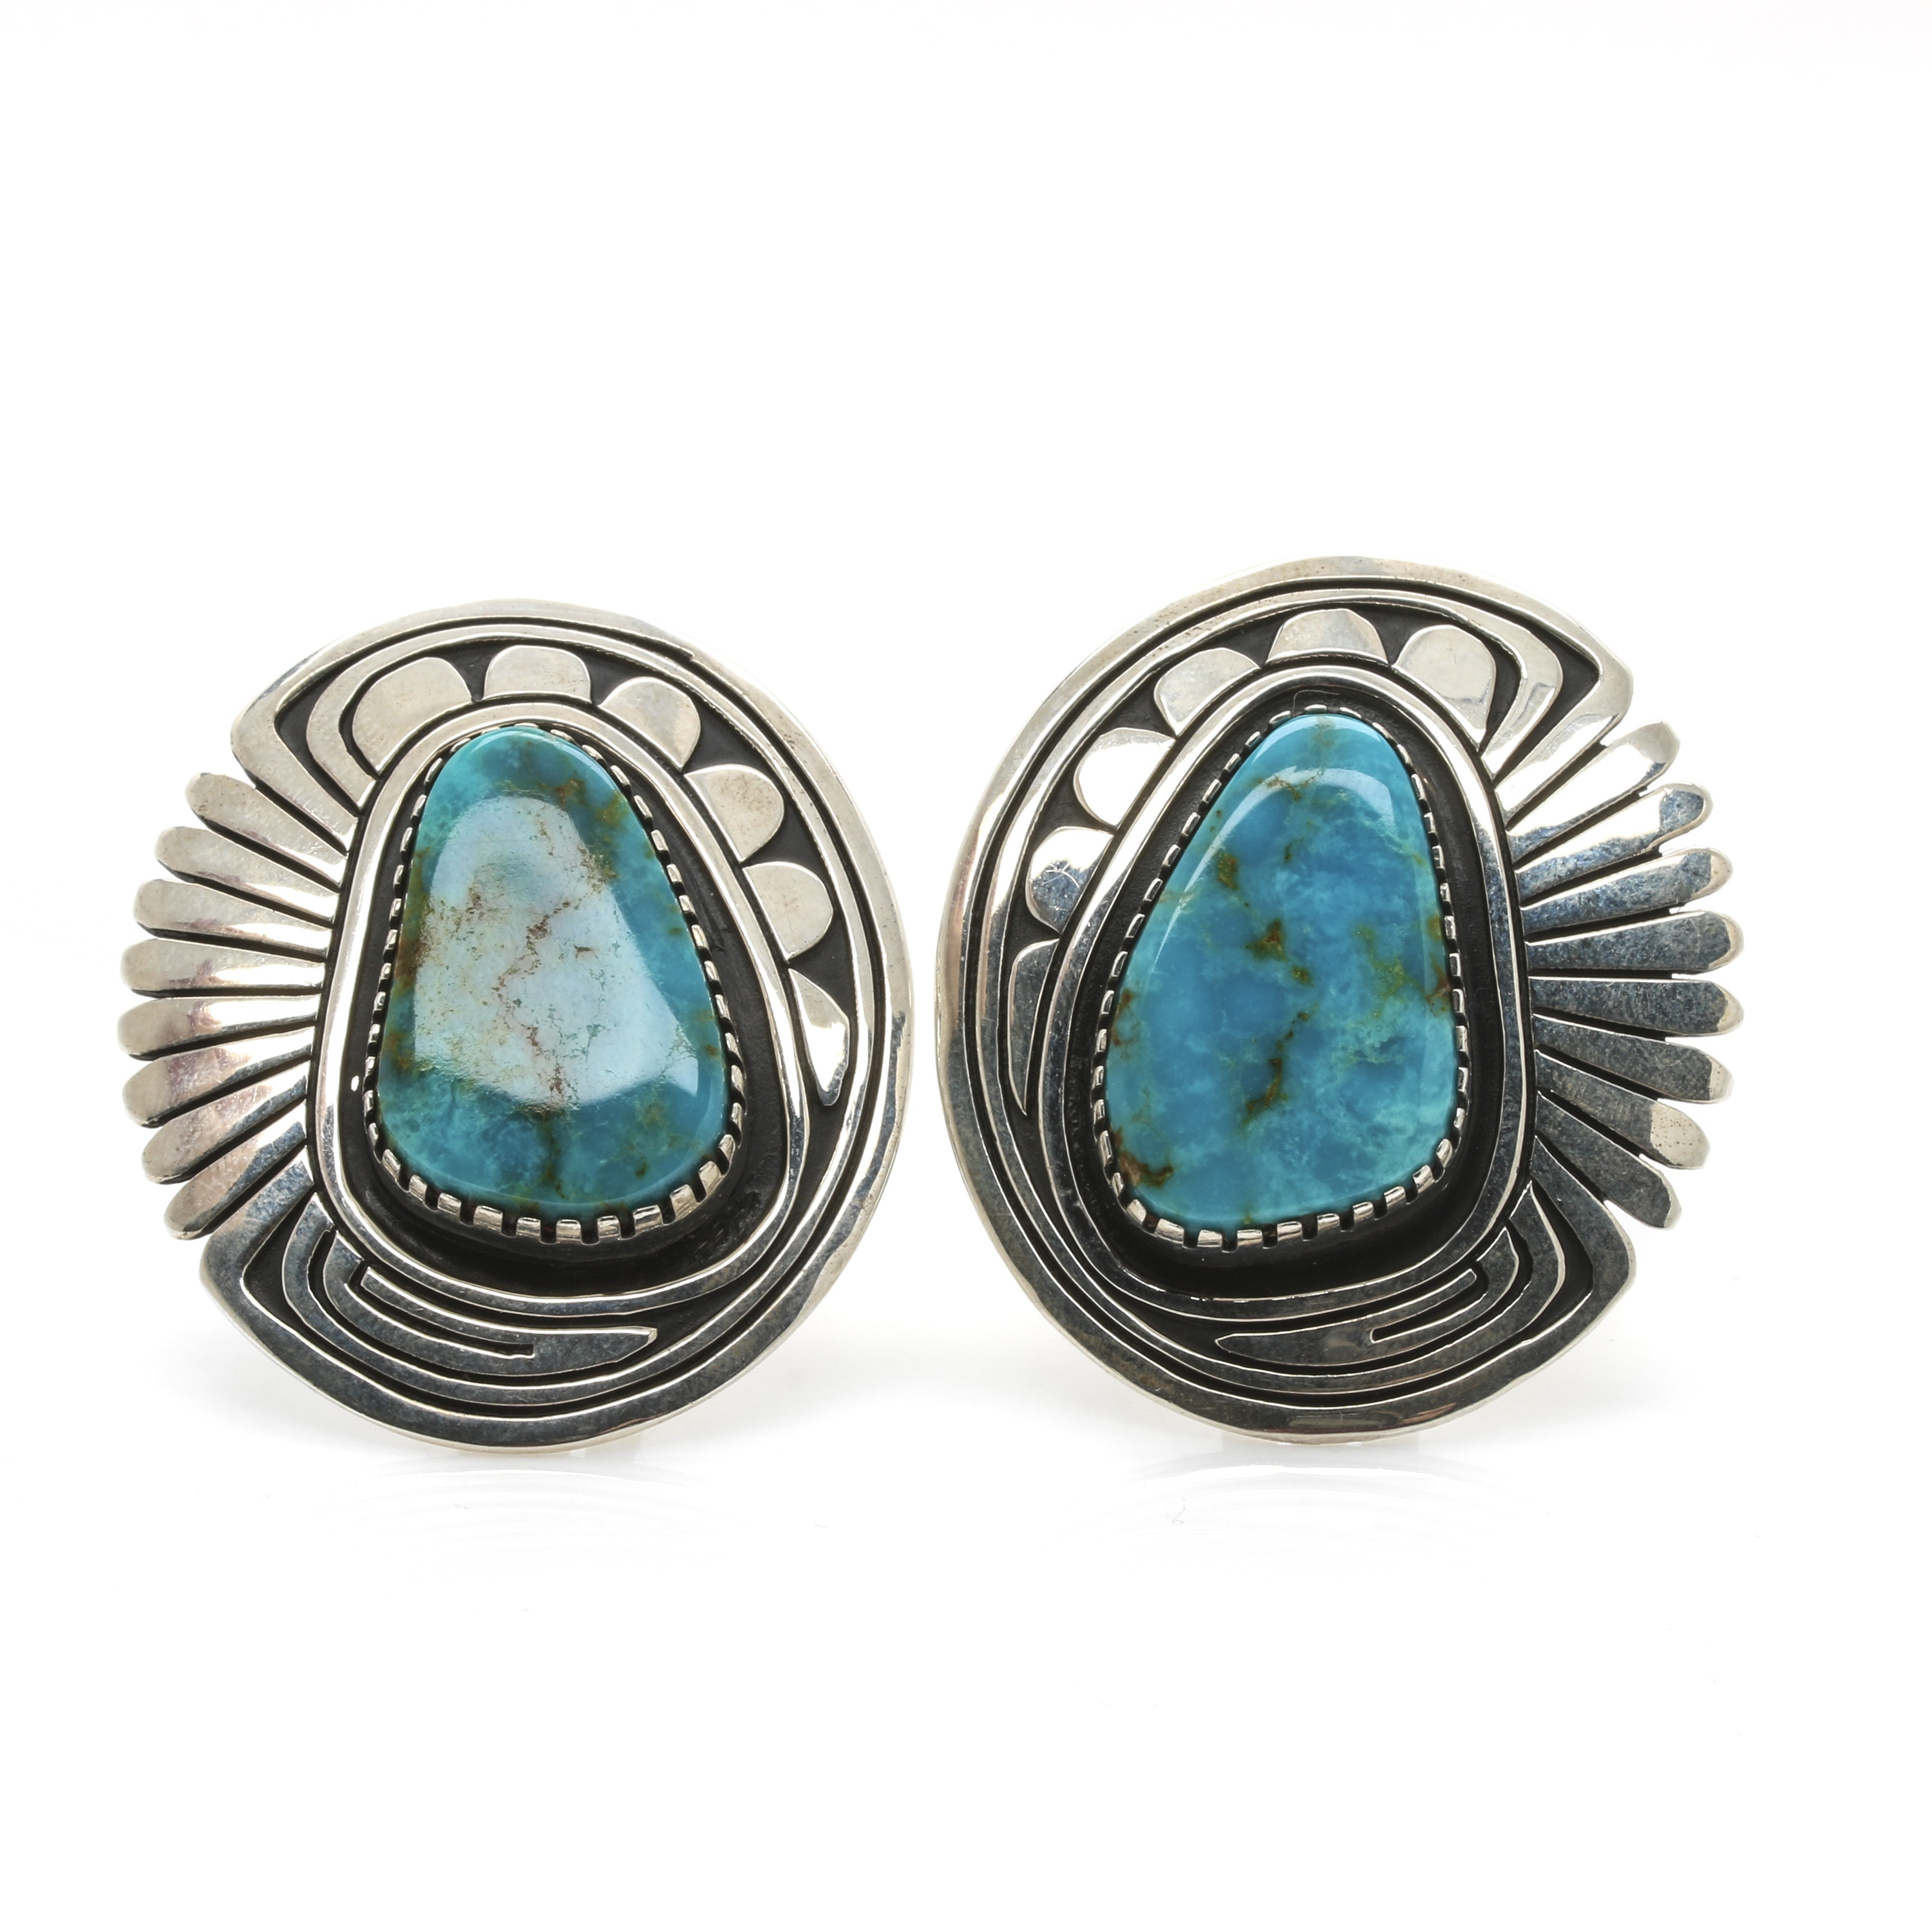 Steven Begay Navajo Diné Sterling Silver Overlay Turquoise Clip On Earrings